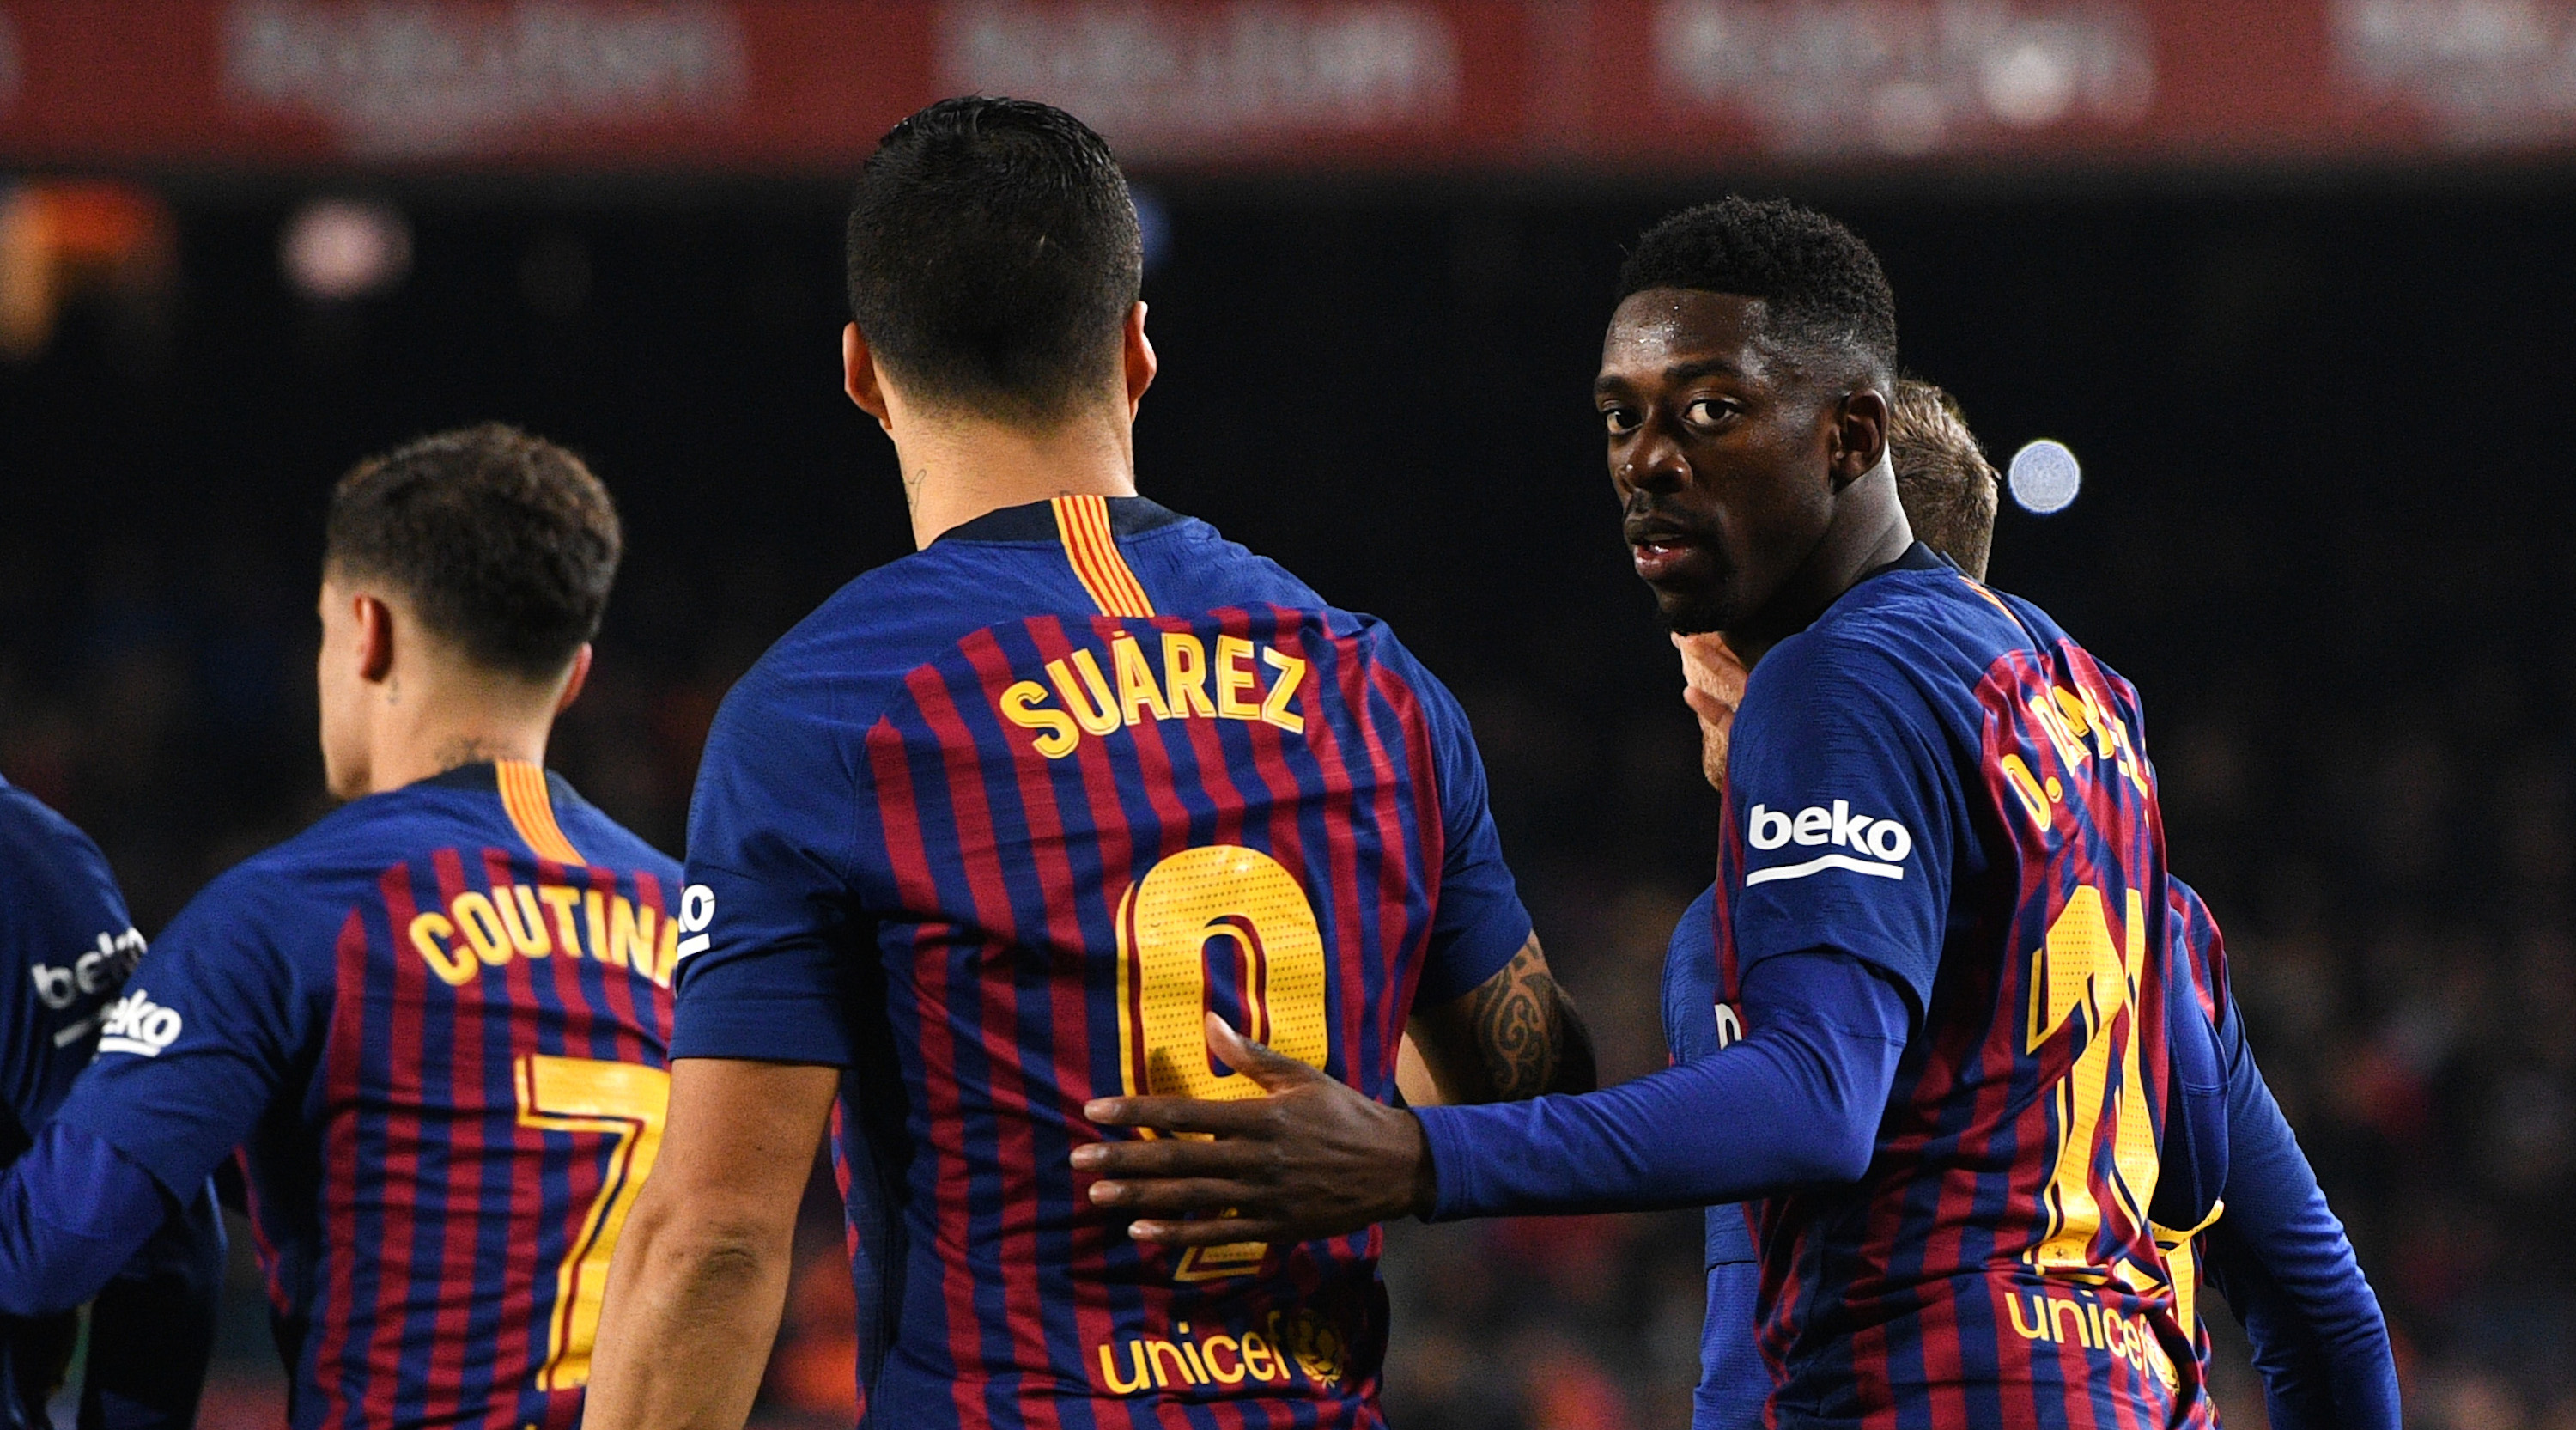 BARCELONA, SPAIN - JANUARY 20: Ousmane Dembele of Barcelona (11) celebrates after scoring his team's first goal with Luis Suarez (9) and team mates during the La Liga match between FC Barcelona and CD Leganes at Camp Nou on January 20, 2019 in Barcelona, Spain. (Photo by David Ramos/Getty Images)